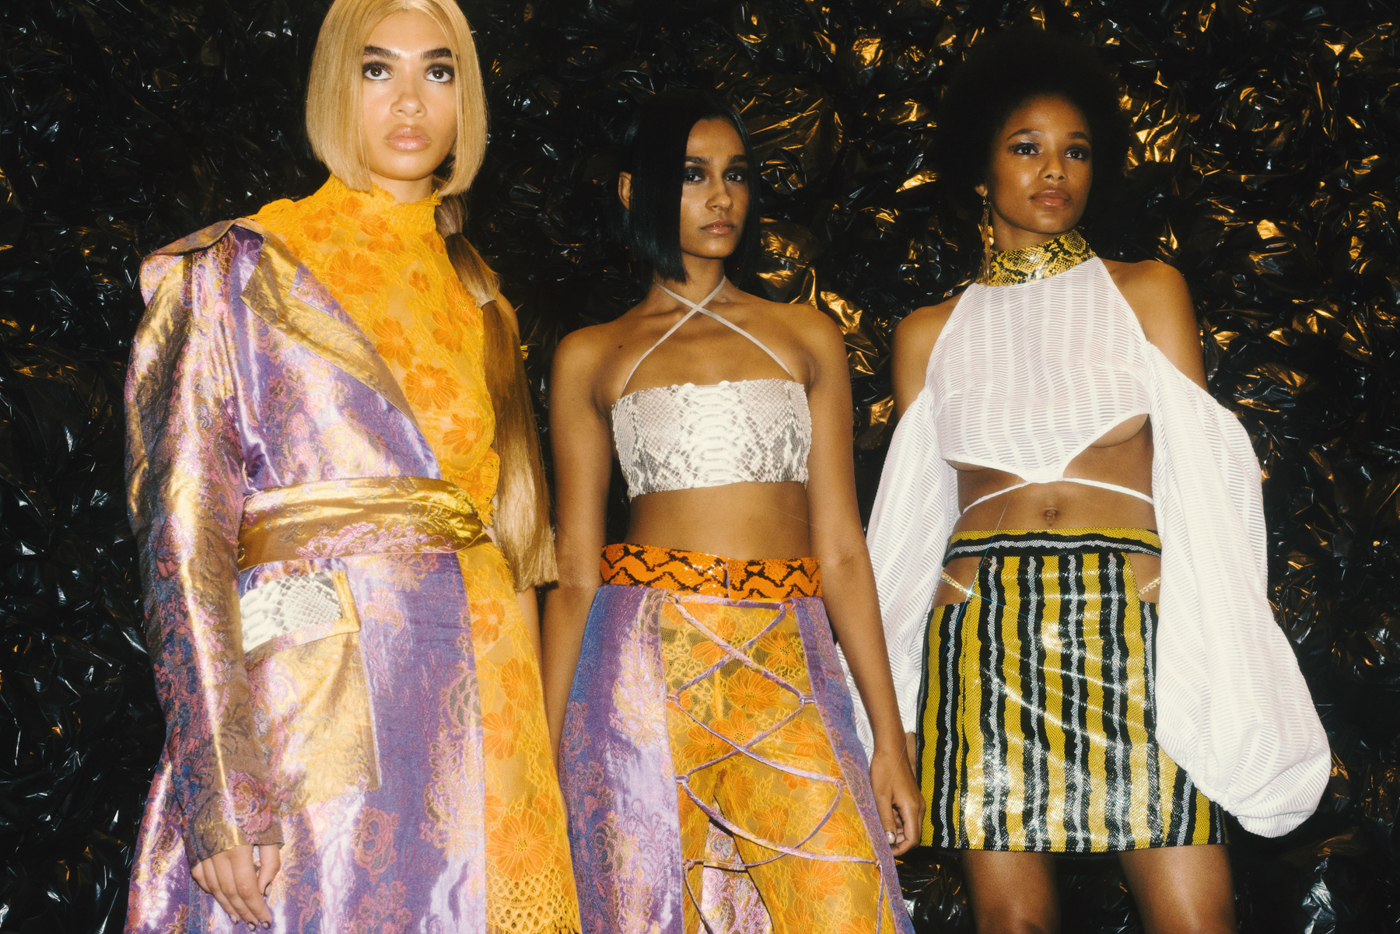 - ➝We produced Kim Shui SS18 Presentation alongside Kristian Kirk, the show was hosted by Century 21 stores in Lower Manhattan.